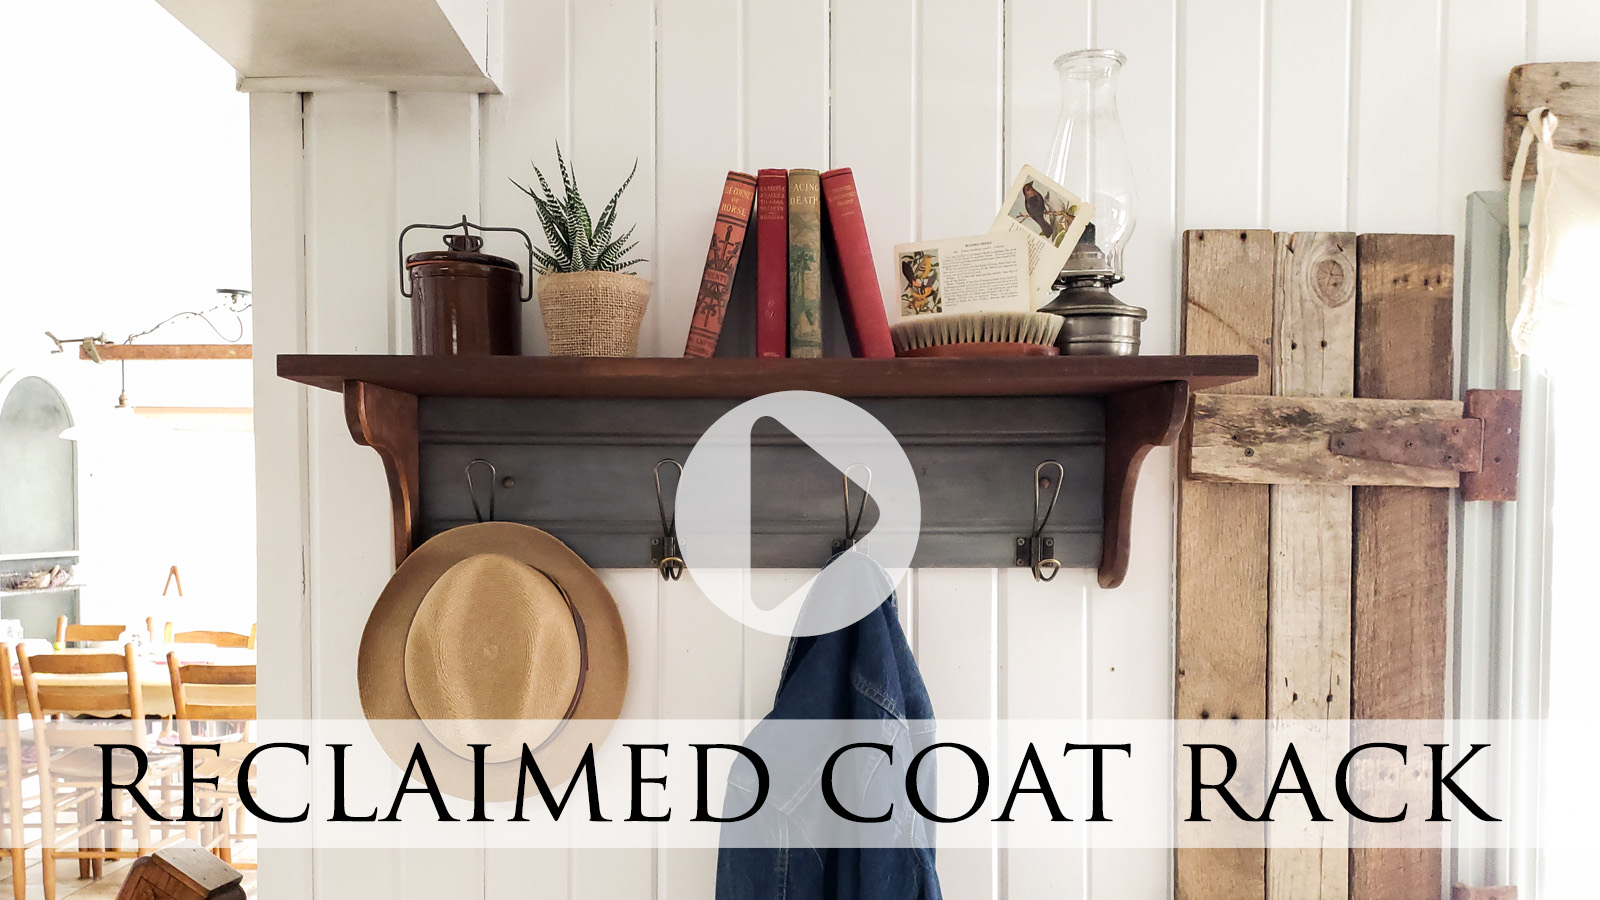 Drawer Front Reclaimed Coat Rack Tutorial by Larissa of Prodigal Pieces | prodigalpieces.com